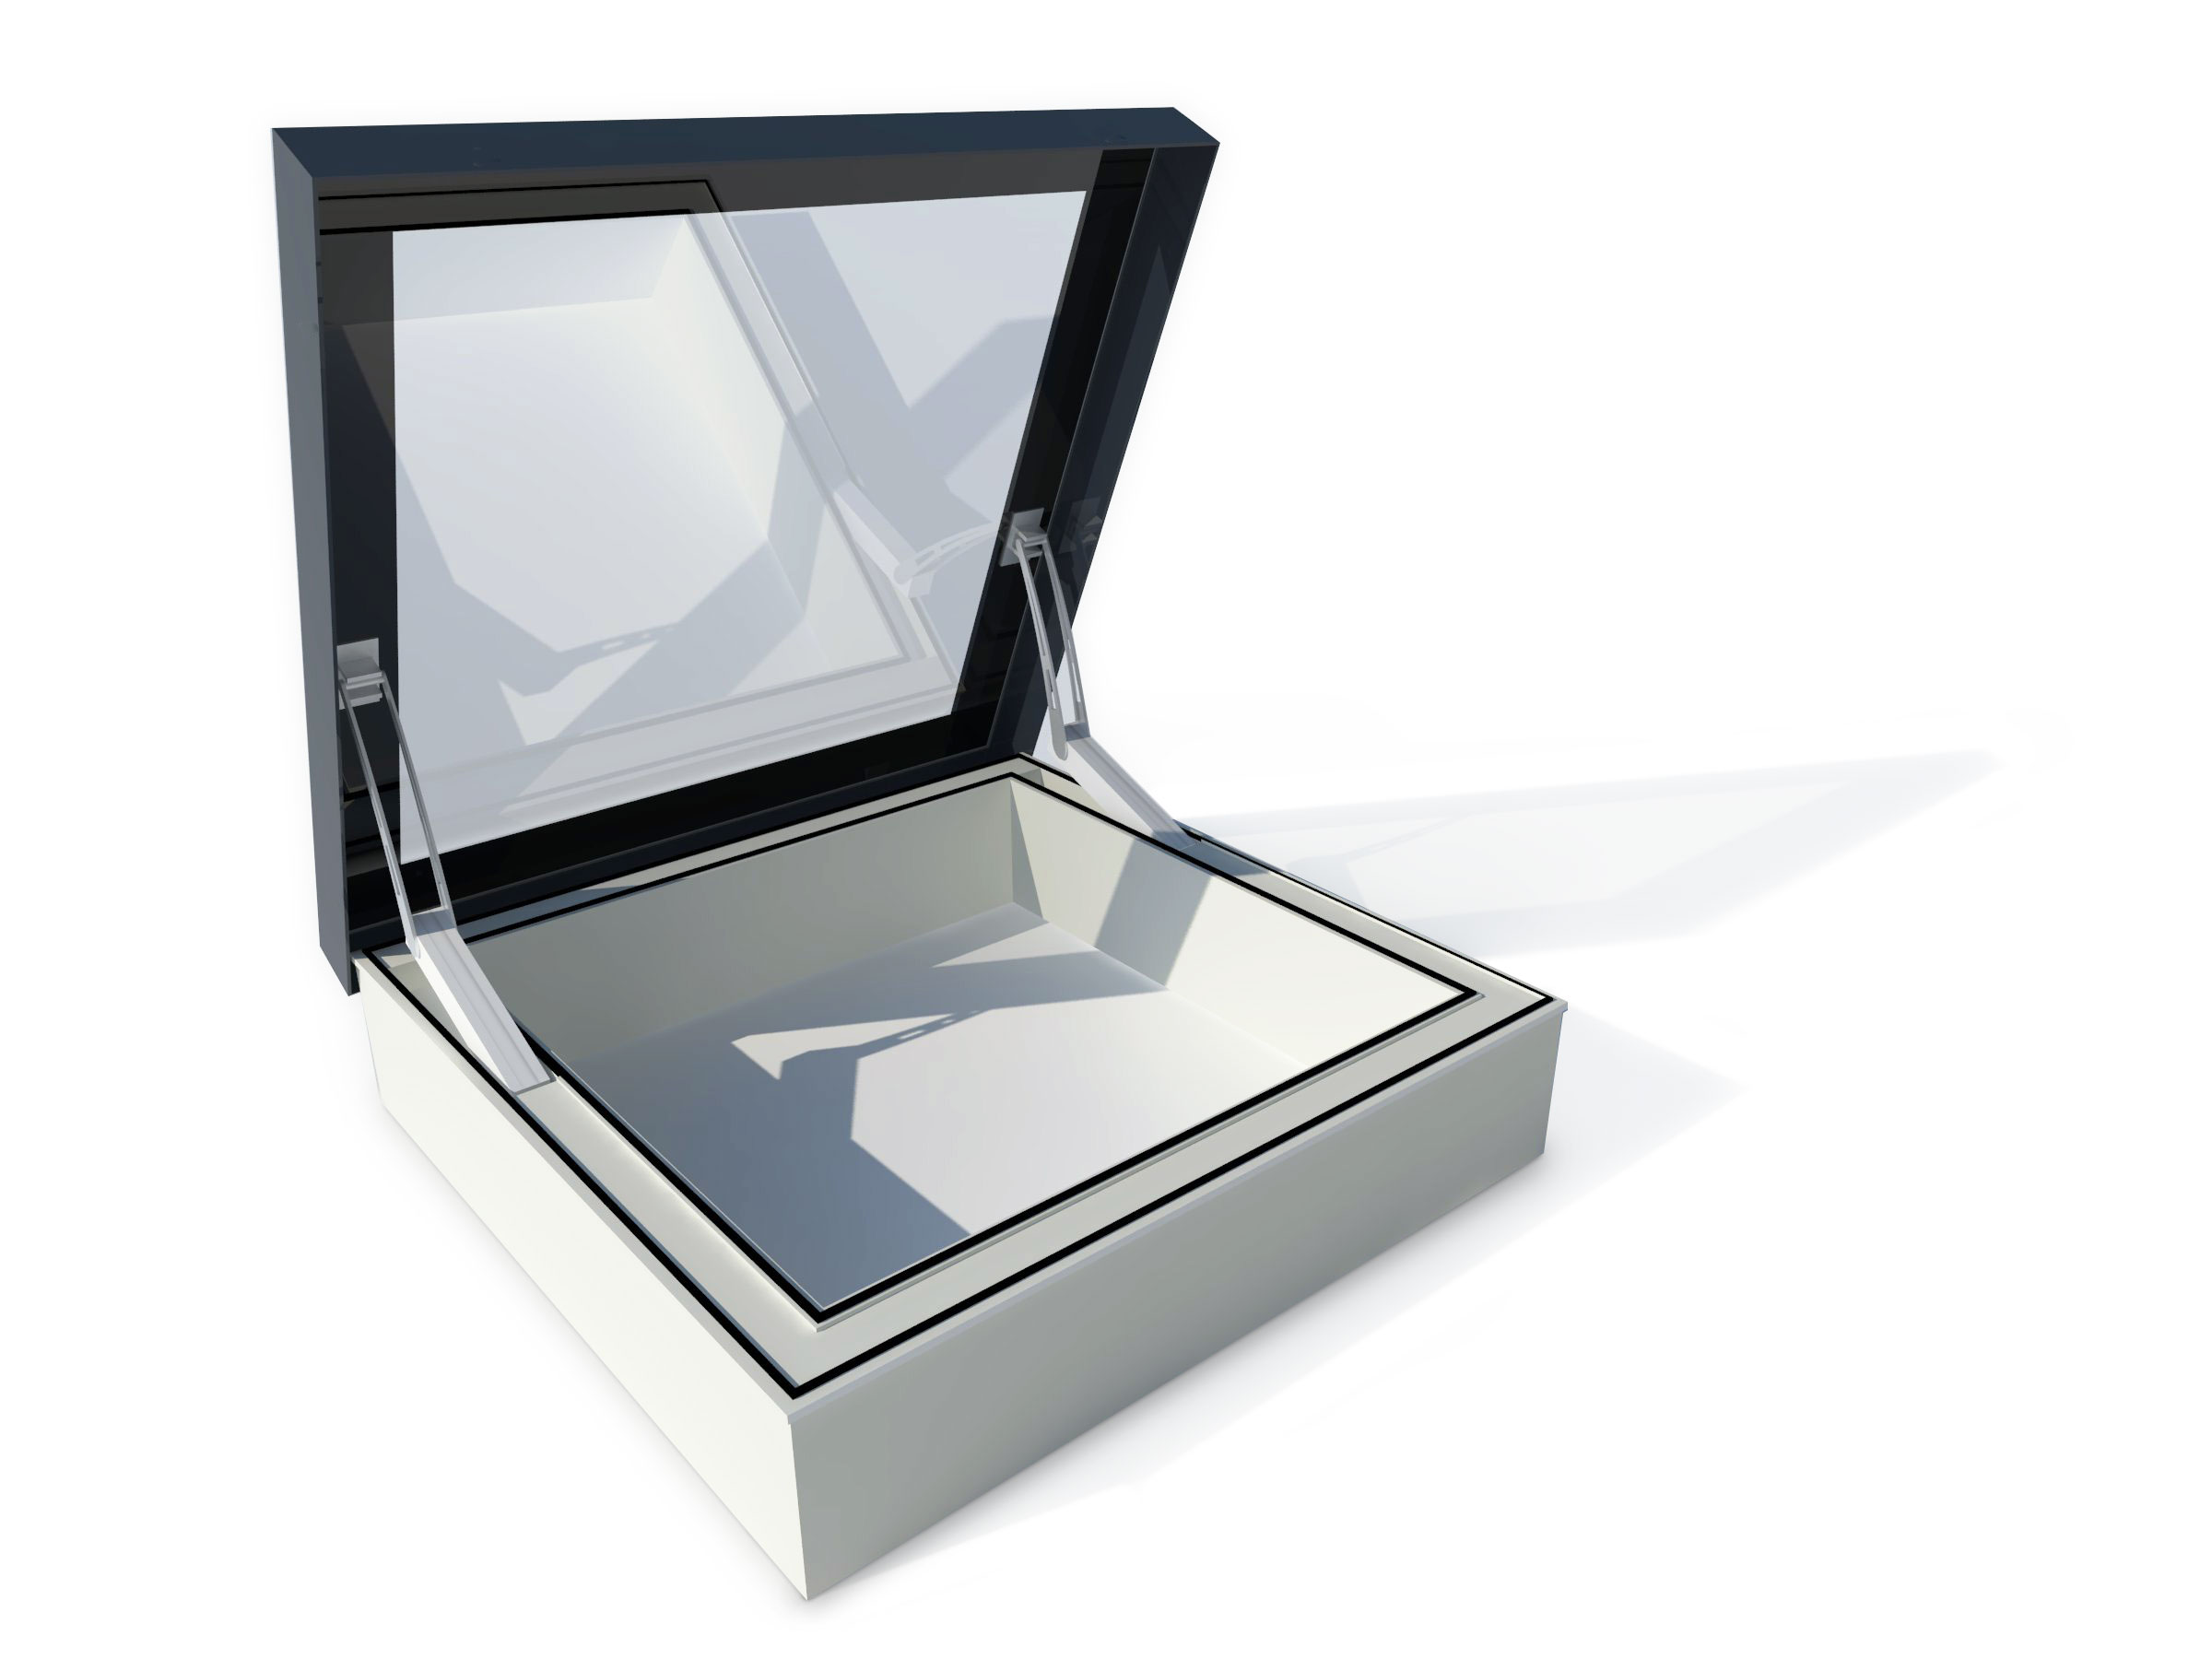 Access hatch and Smoke Ventilation rooflight